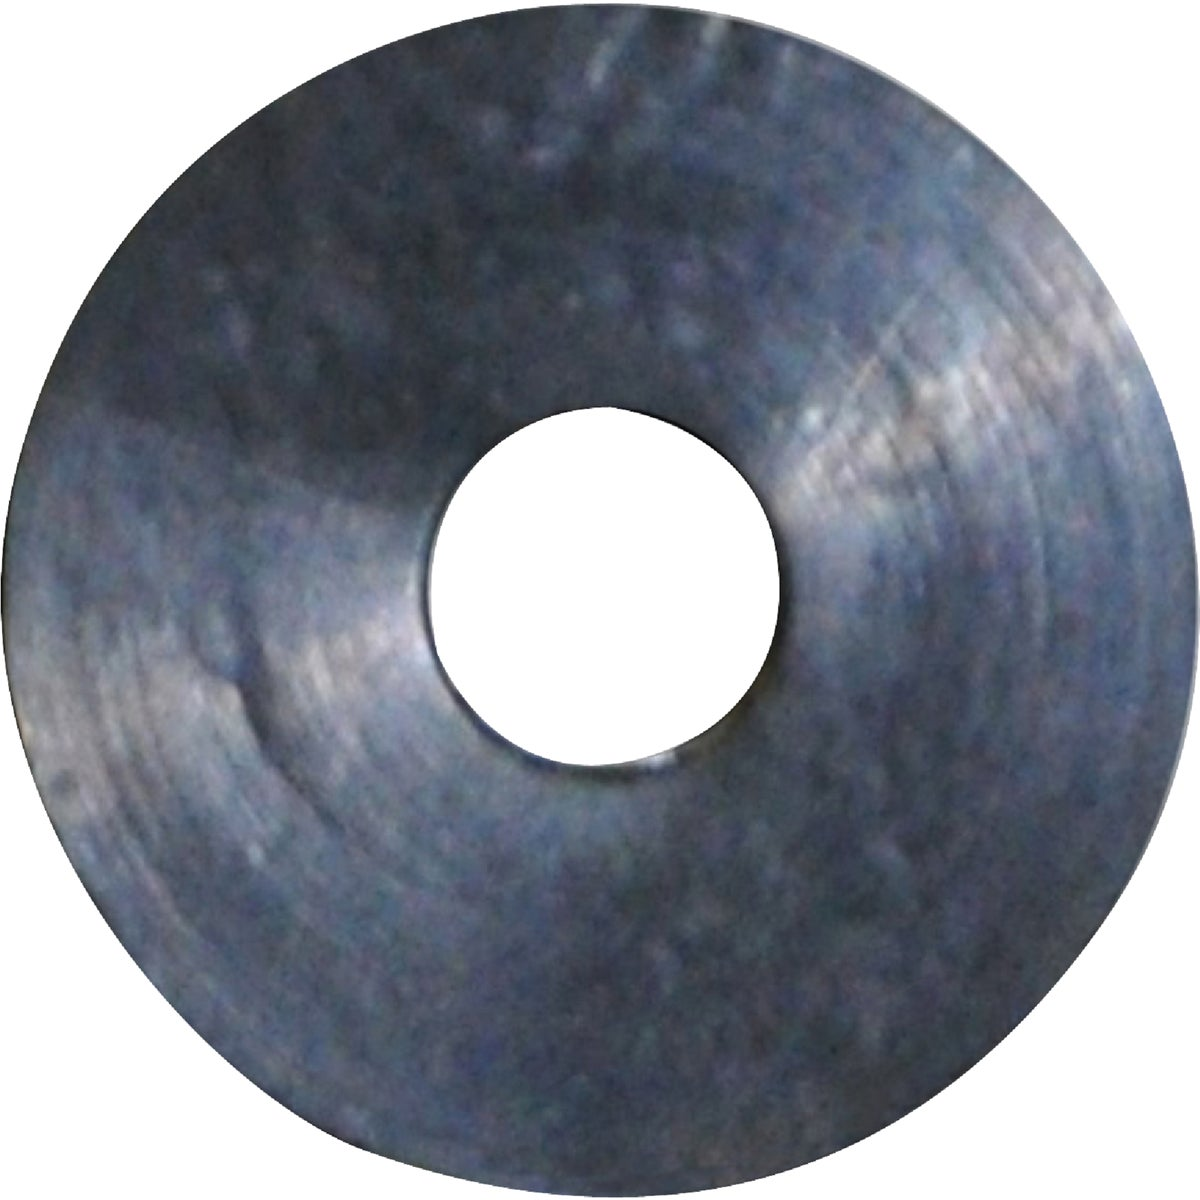 Danco 88570 Rubber Flat Washer, 17/32-Inch, 10-Pack